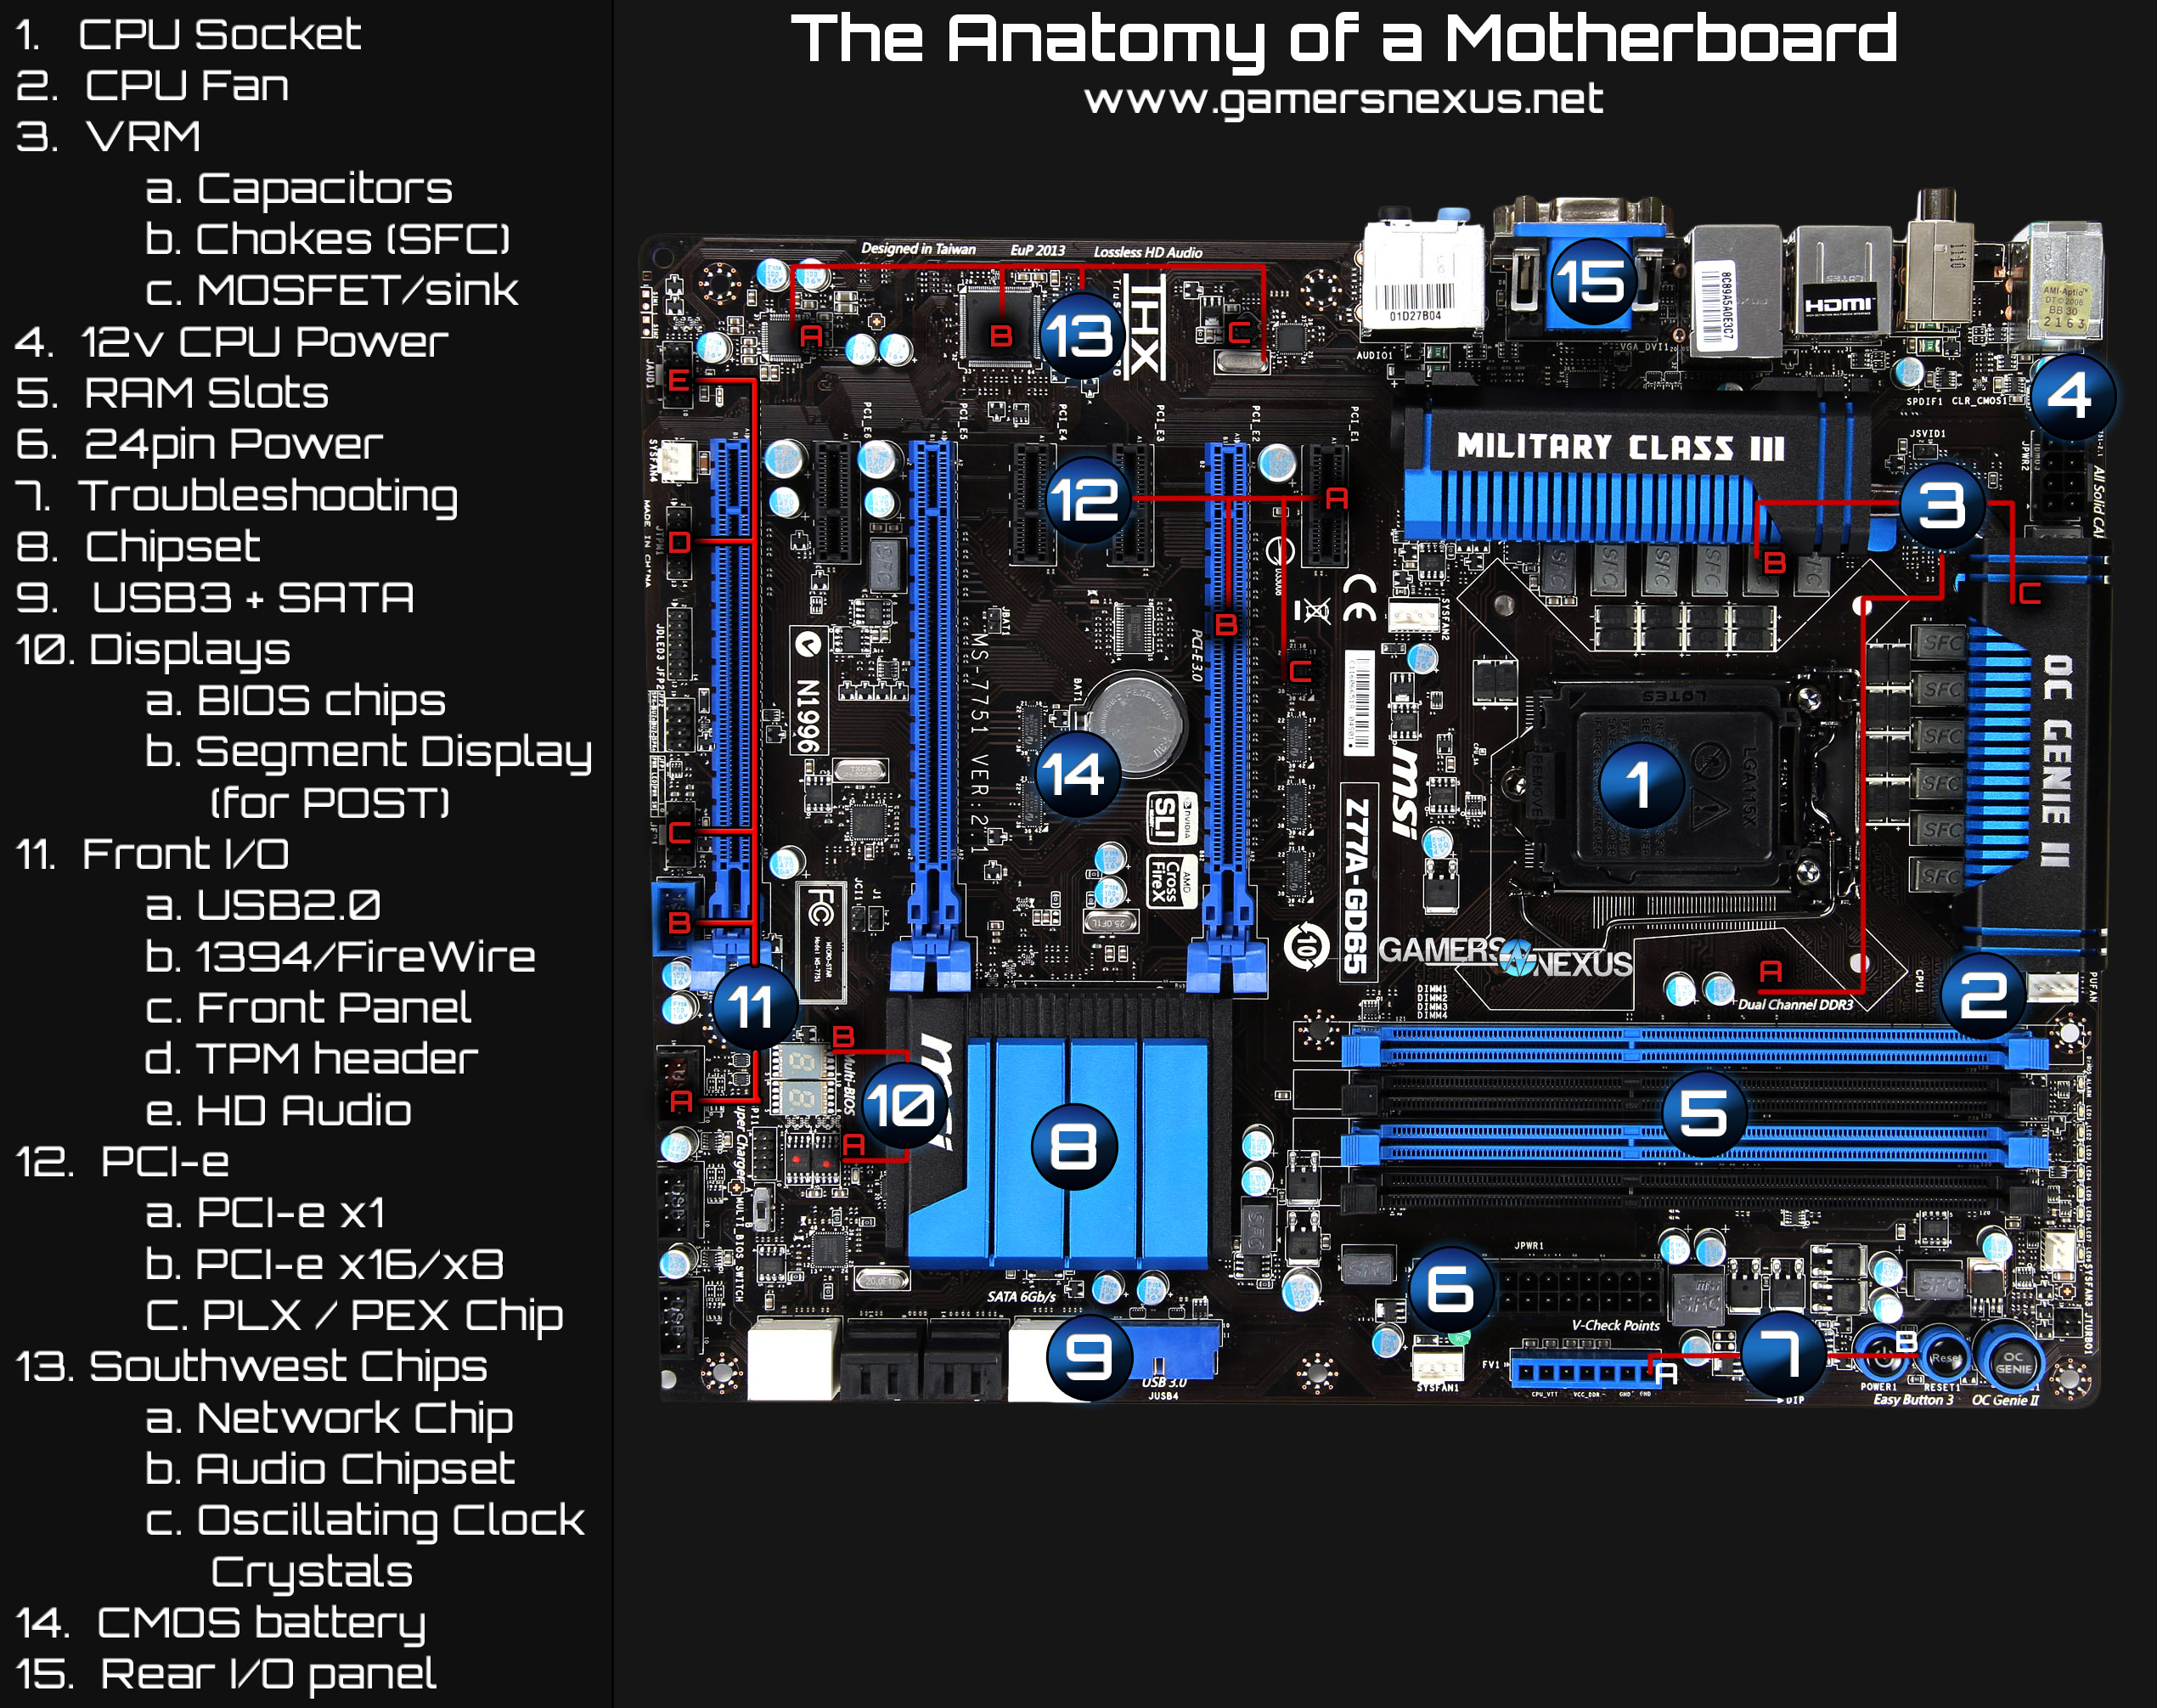 Anatomy of a motherboard vrm chipset pci e explained an error occurred ccuart Images